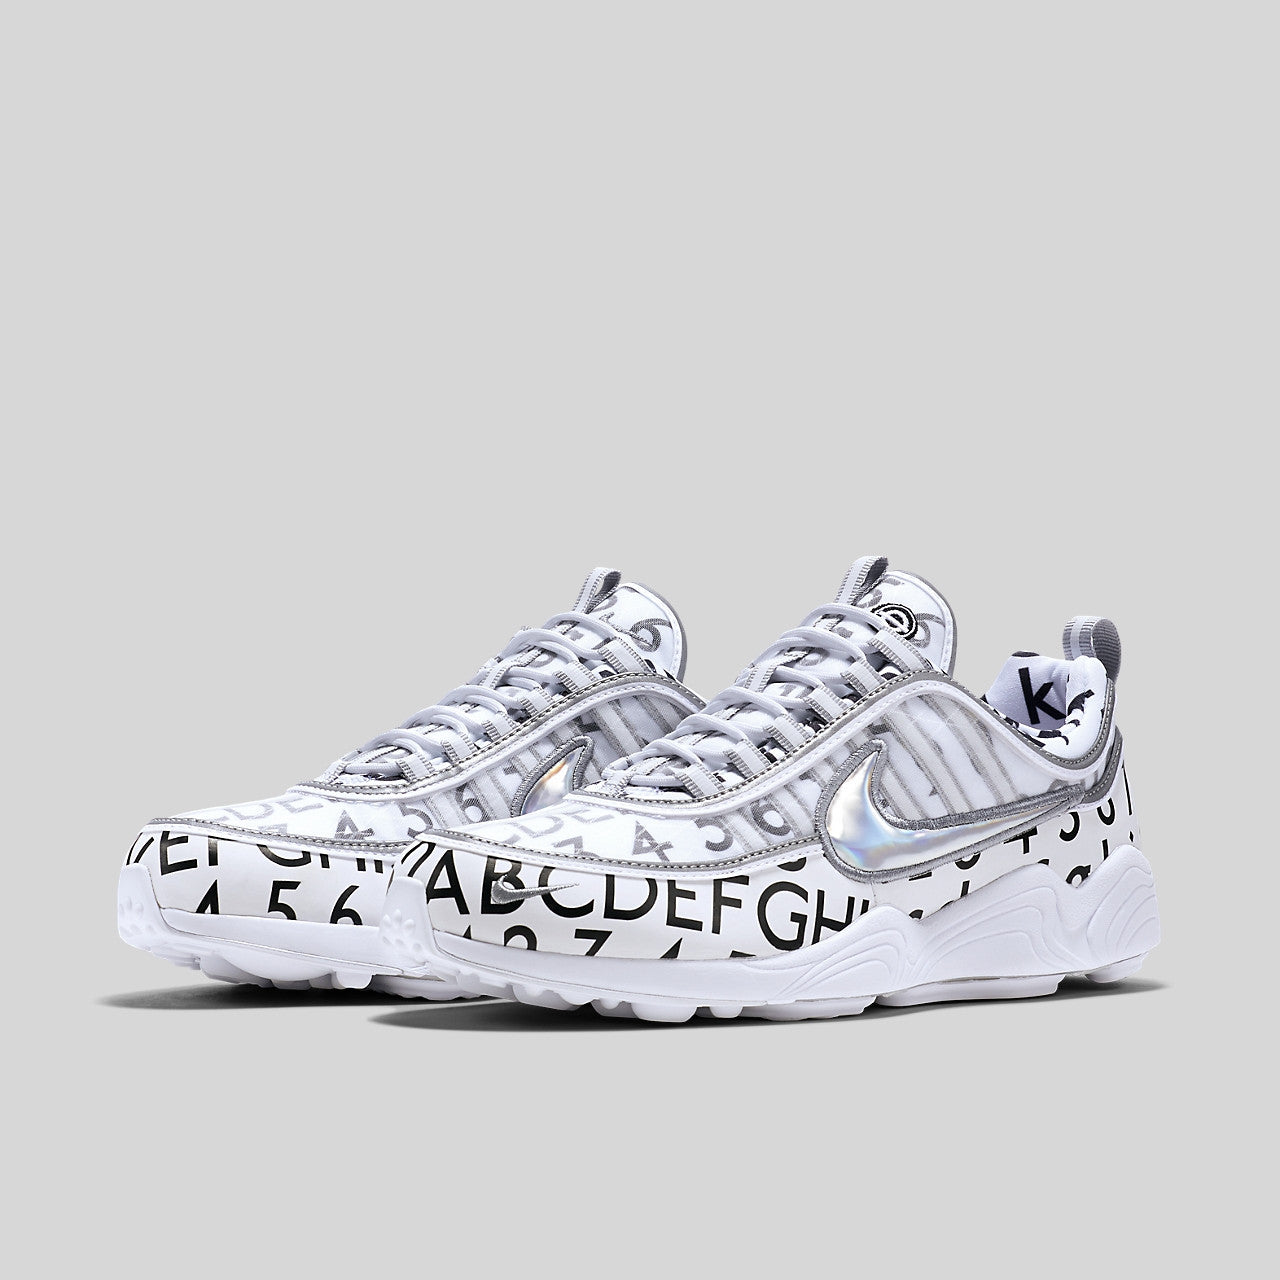 Roundel x Nike Air Zoom Spiridon 16 GPX White Reflect Silver. Item Number   904336-100 a98e86ad1